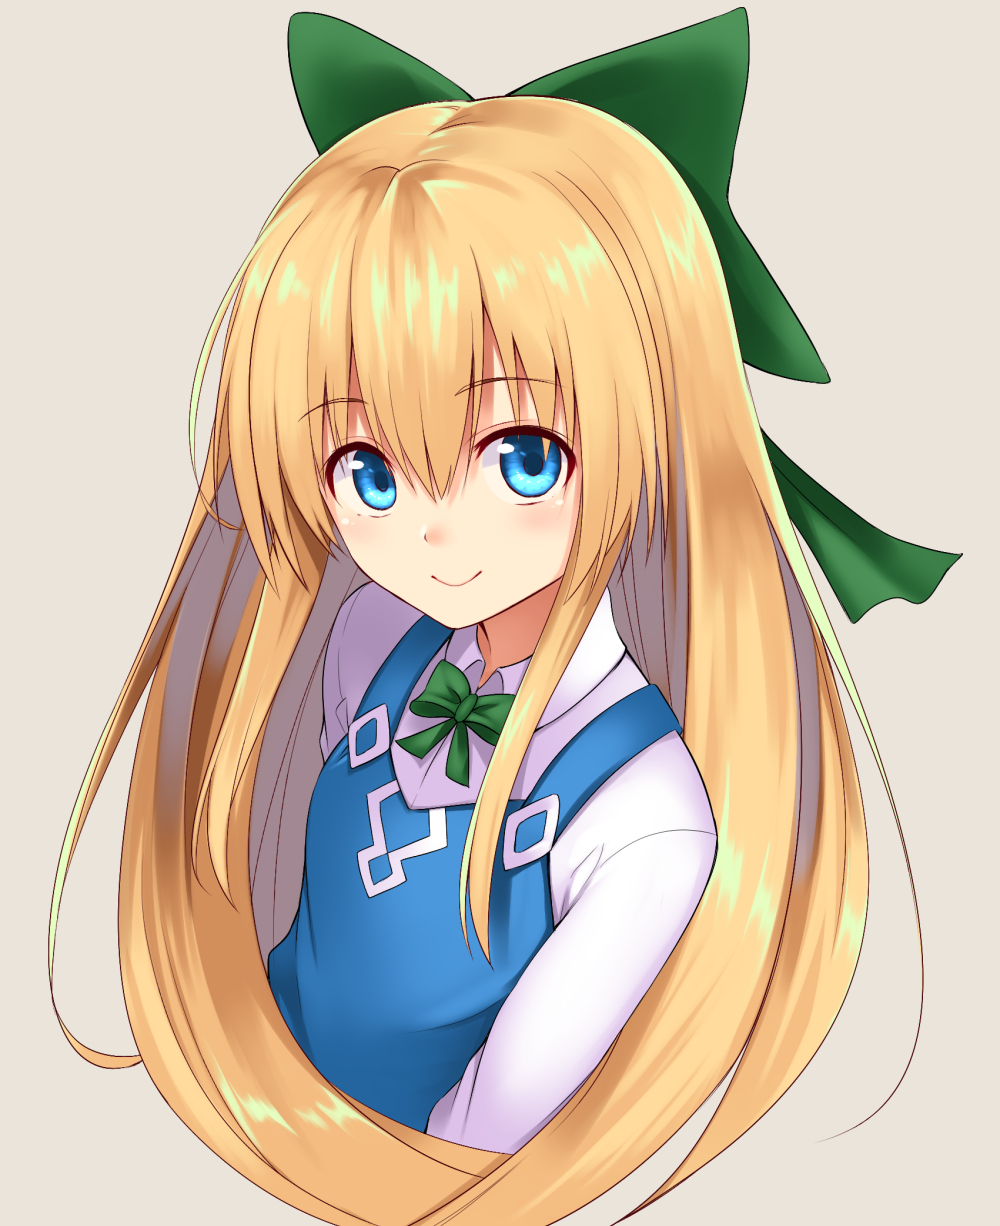 1girl bangs blonde_hair blue_eyes blue_vest bow bowtie closed_mouth collared_shirt cropped_torso eyebrows_visible_through_hair from_above green_bow green_neckwear grey_background hair_between_eyes hair_bow highres long_hair long_sleeves looking_at_viewer mahcdai original shiny shiny_hair shirt sidelocks simple_background smile solo upper_body vest white_shirt wing_collar